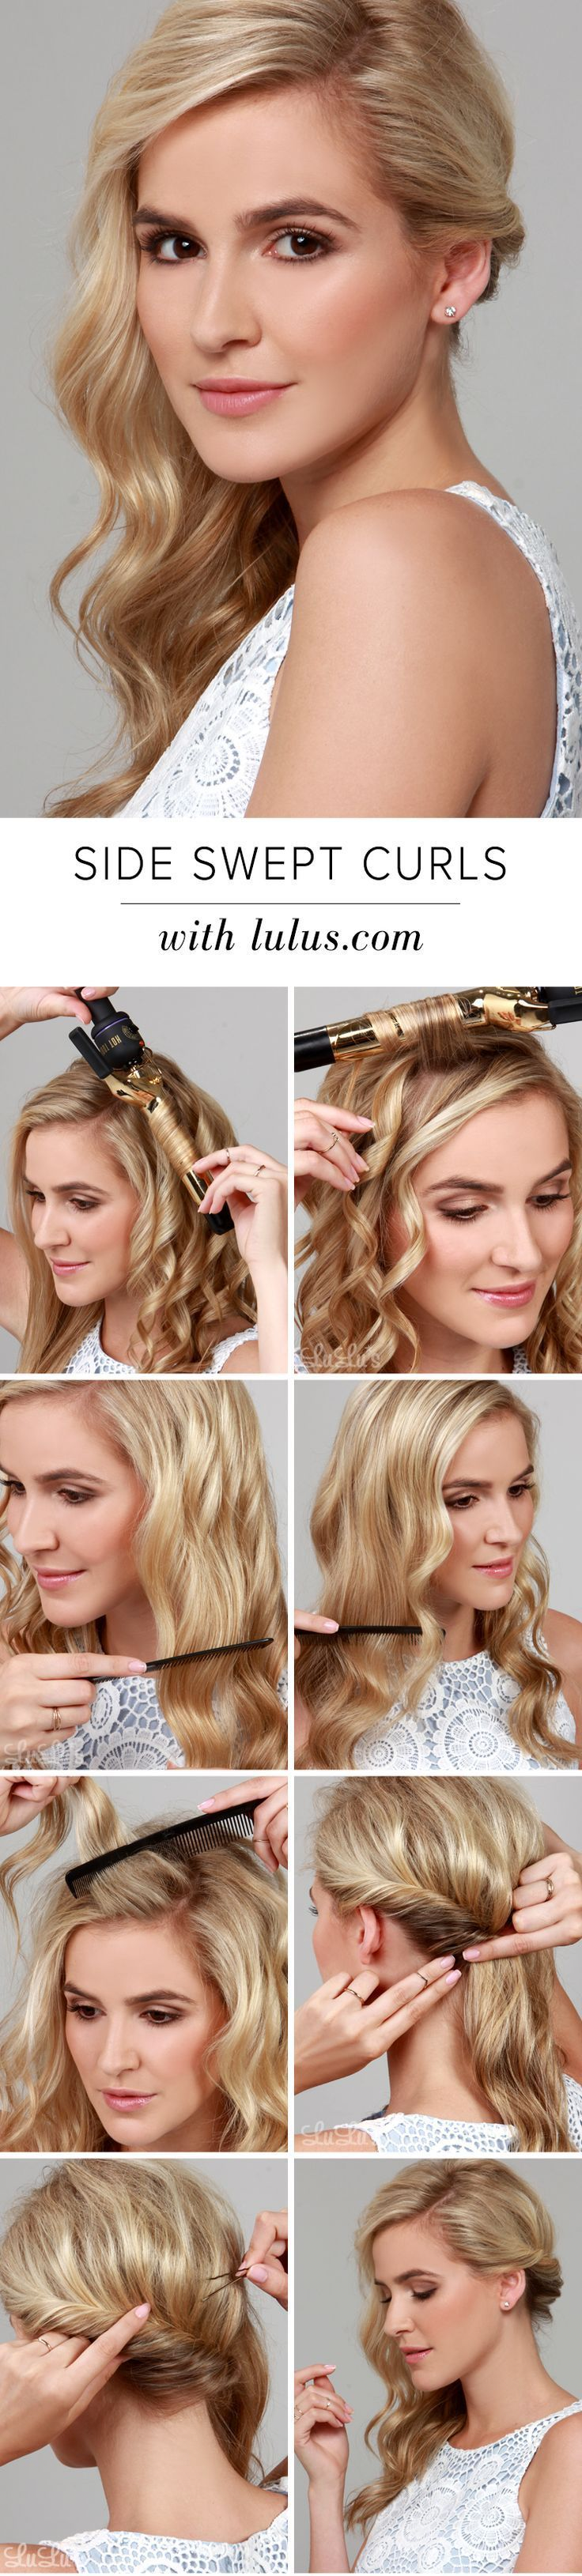 Lulus howto side swept curls hair tutorial side swept curls